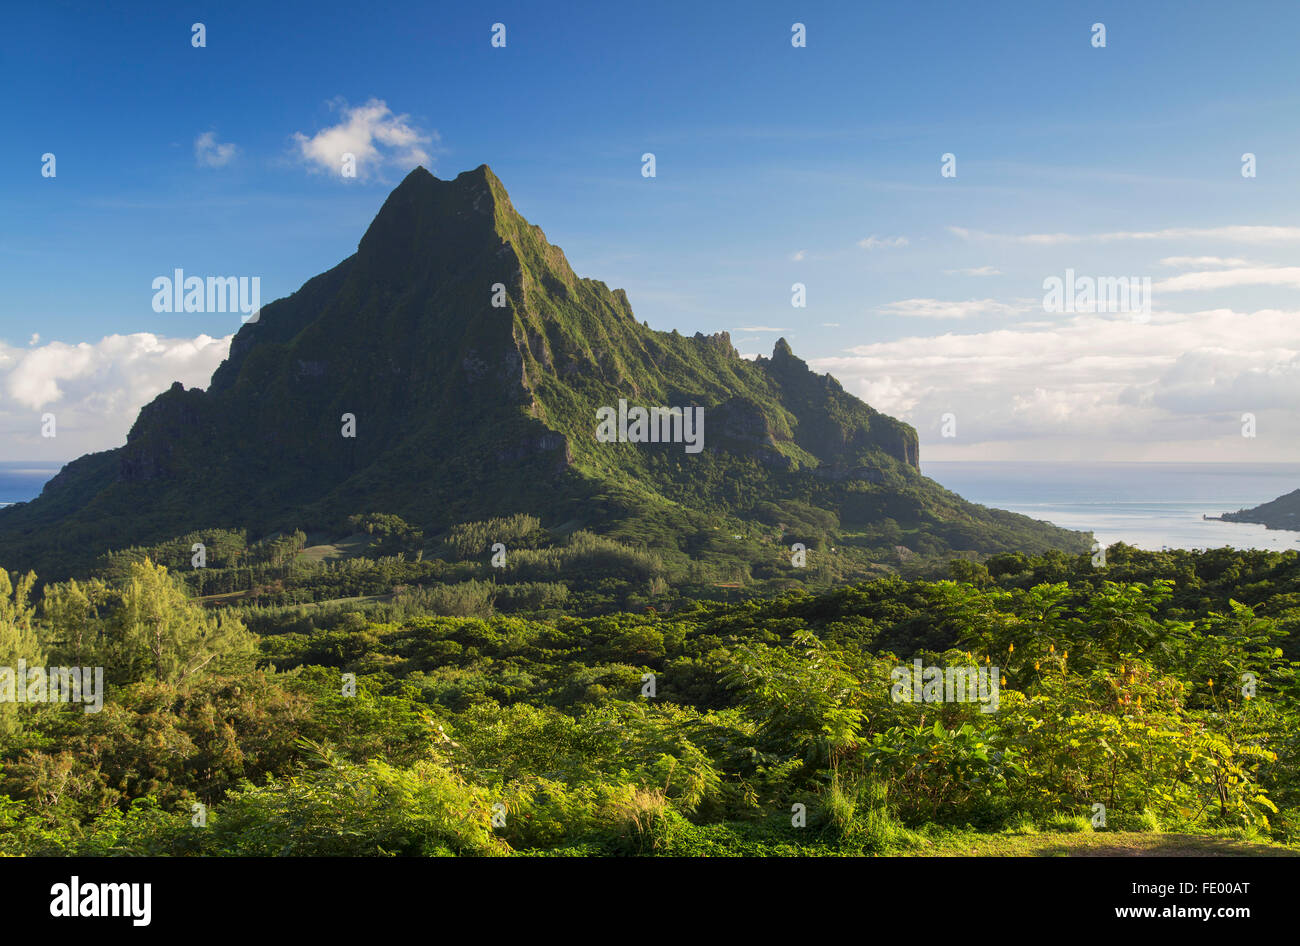 Mount Rotui, Mo'orea, Society Islands, French Polynesia - Stock Image